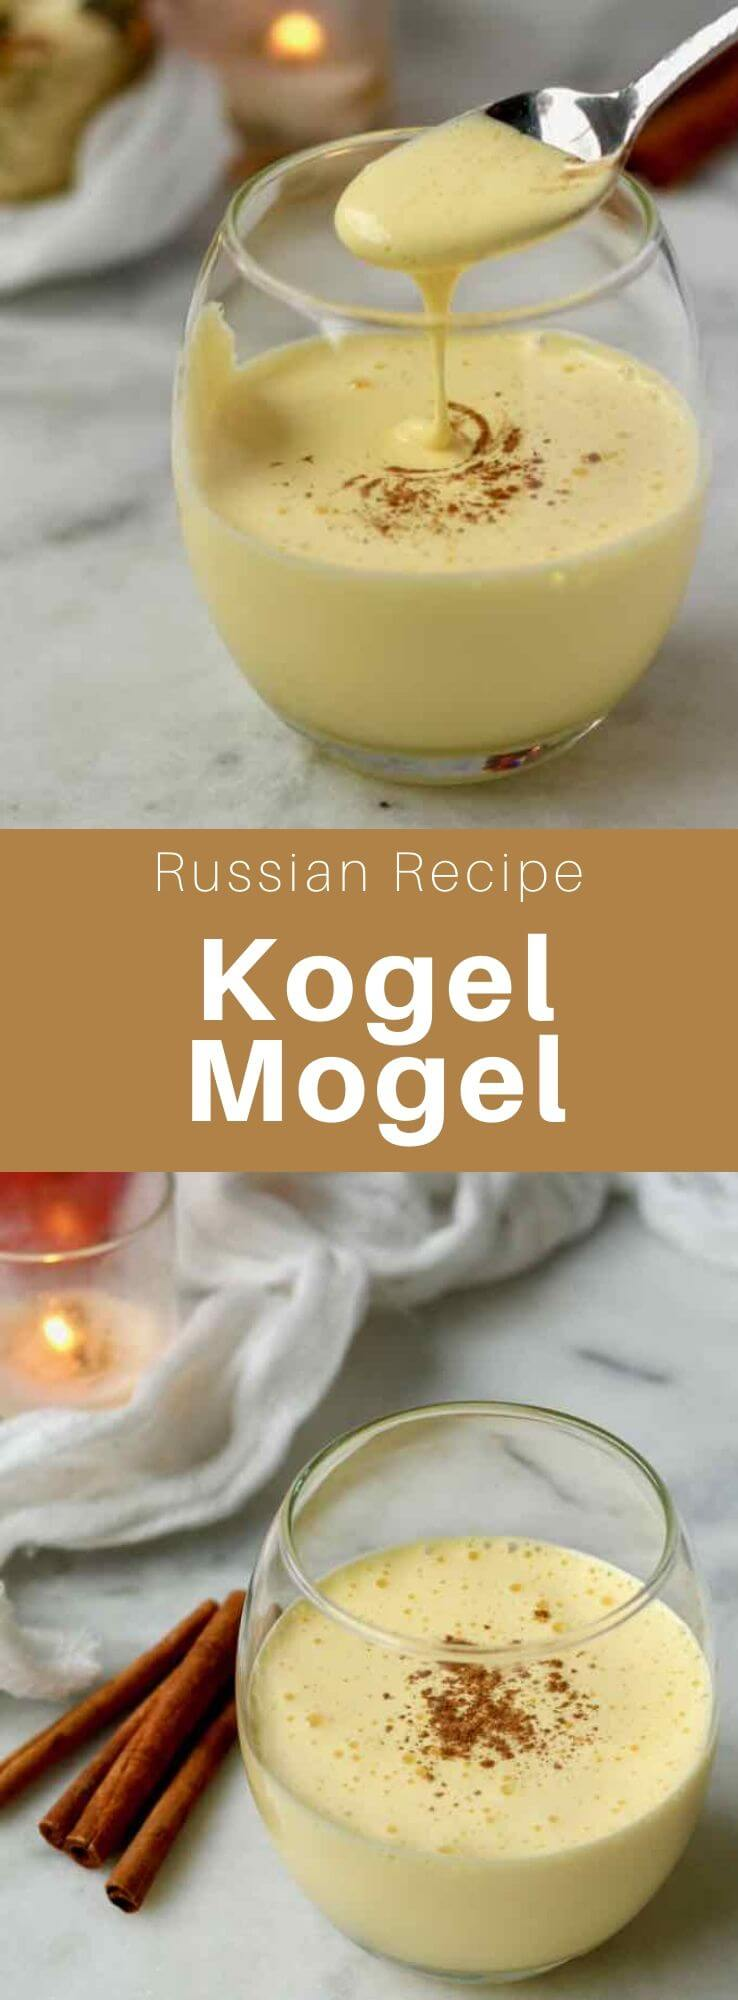 Kogel mogel is a popular dessert of Jewish origin from Central and Eastern Europe called gogel mogel in Yiddish. Similar to eggnog, it is made from egg yolk and sugar with a flavoring. #Russia #Poland #Russian #Polish #RussianRecipe #PolishRecipe #RussianFood #PoliishFood #WorldCuisine #196flavors